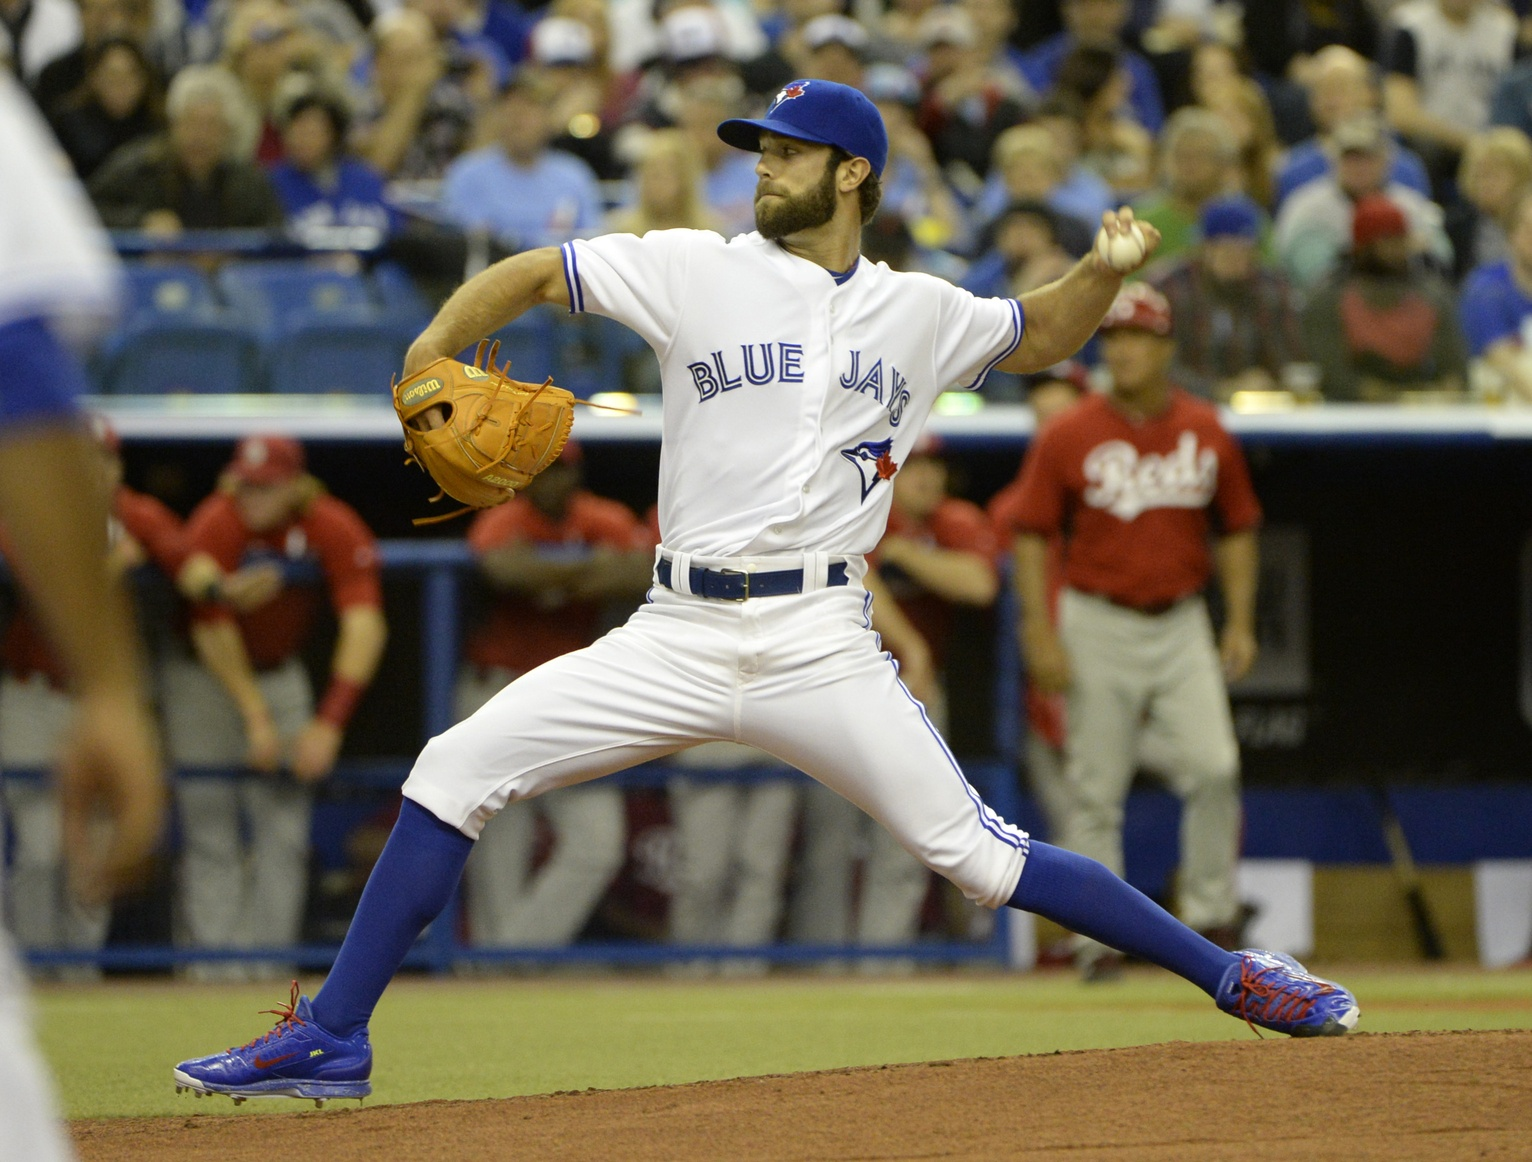 Toronto Blue Jays pitcher Daniel Norris (32) throws the ball during the first inning against the Cincinnati Redsat the Olympic Stadium. (Photo: Eric Bolte-USA TODAY Sports)